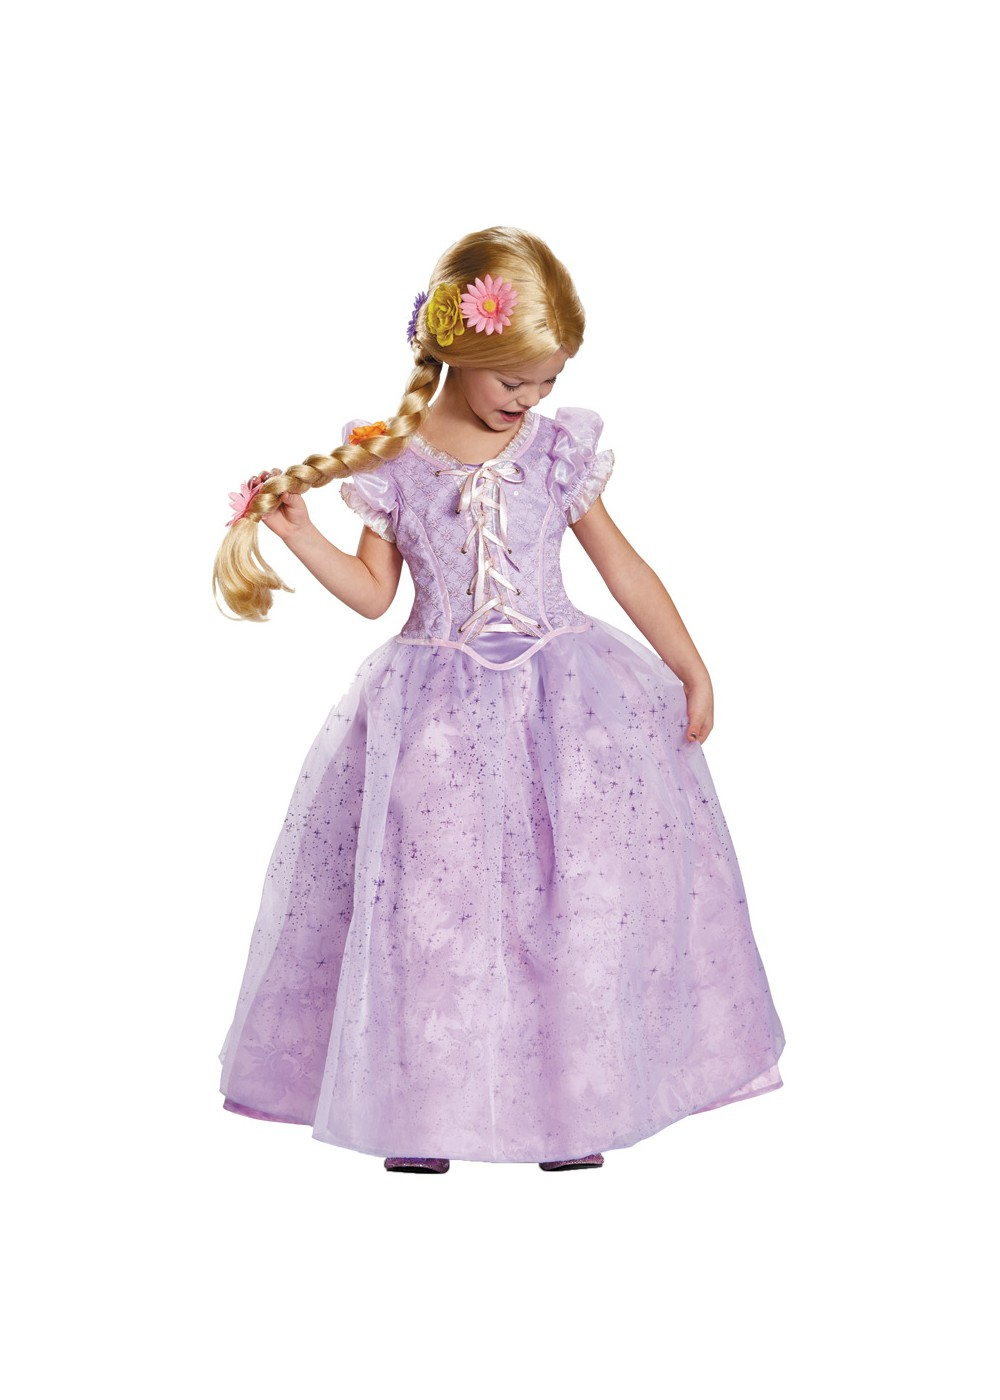 Kids Disneys Rapunzel Girls Prestige Costume